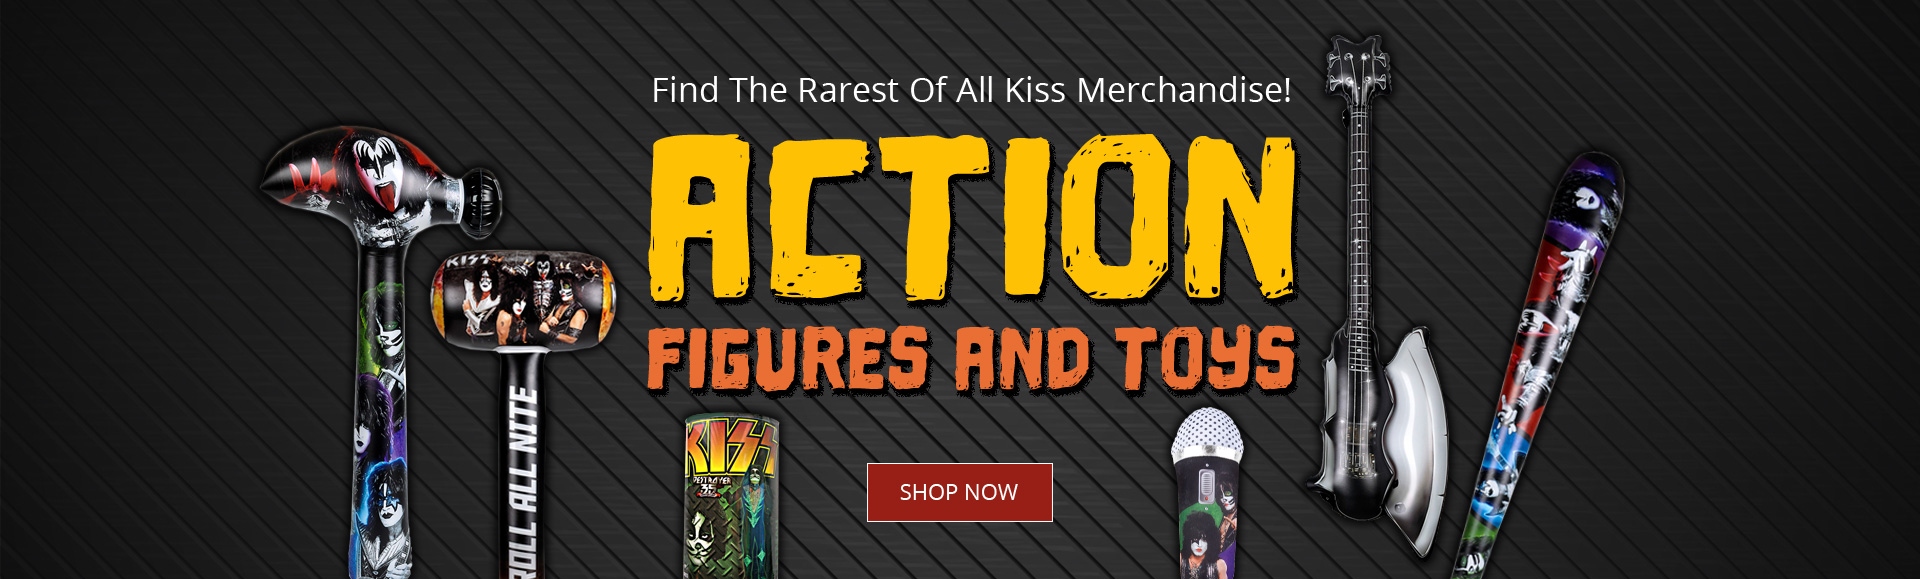 KISSArmyWarehouse com